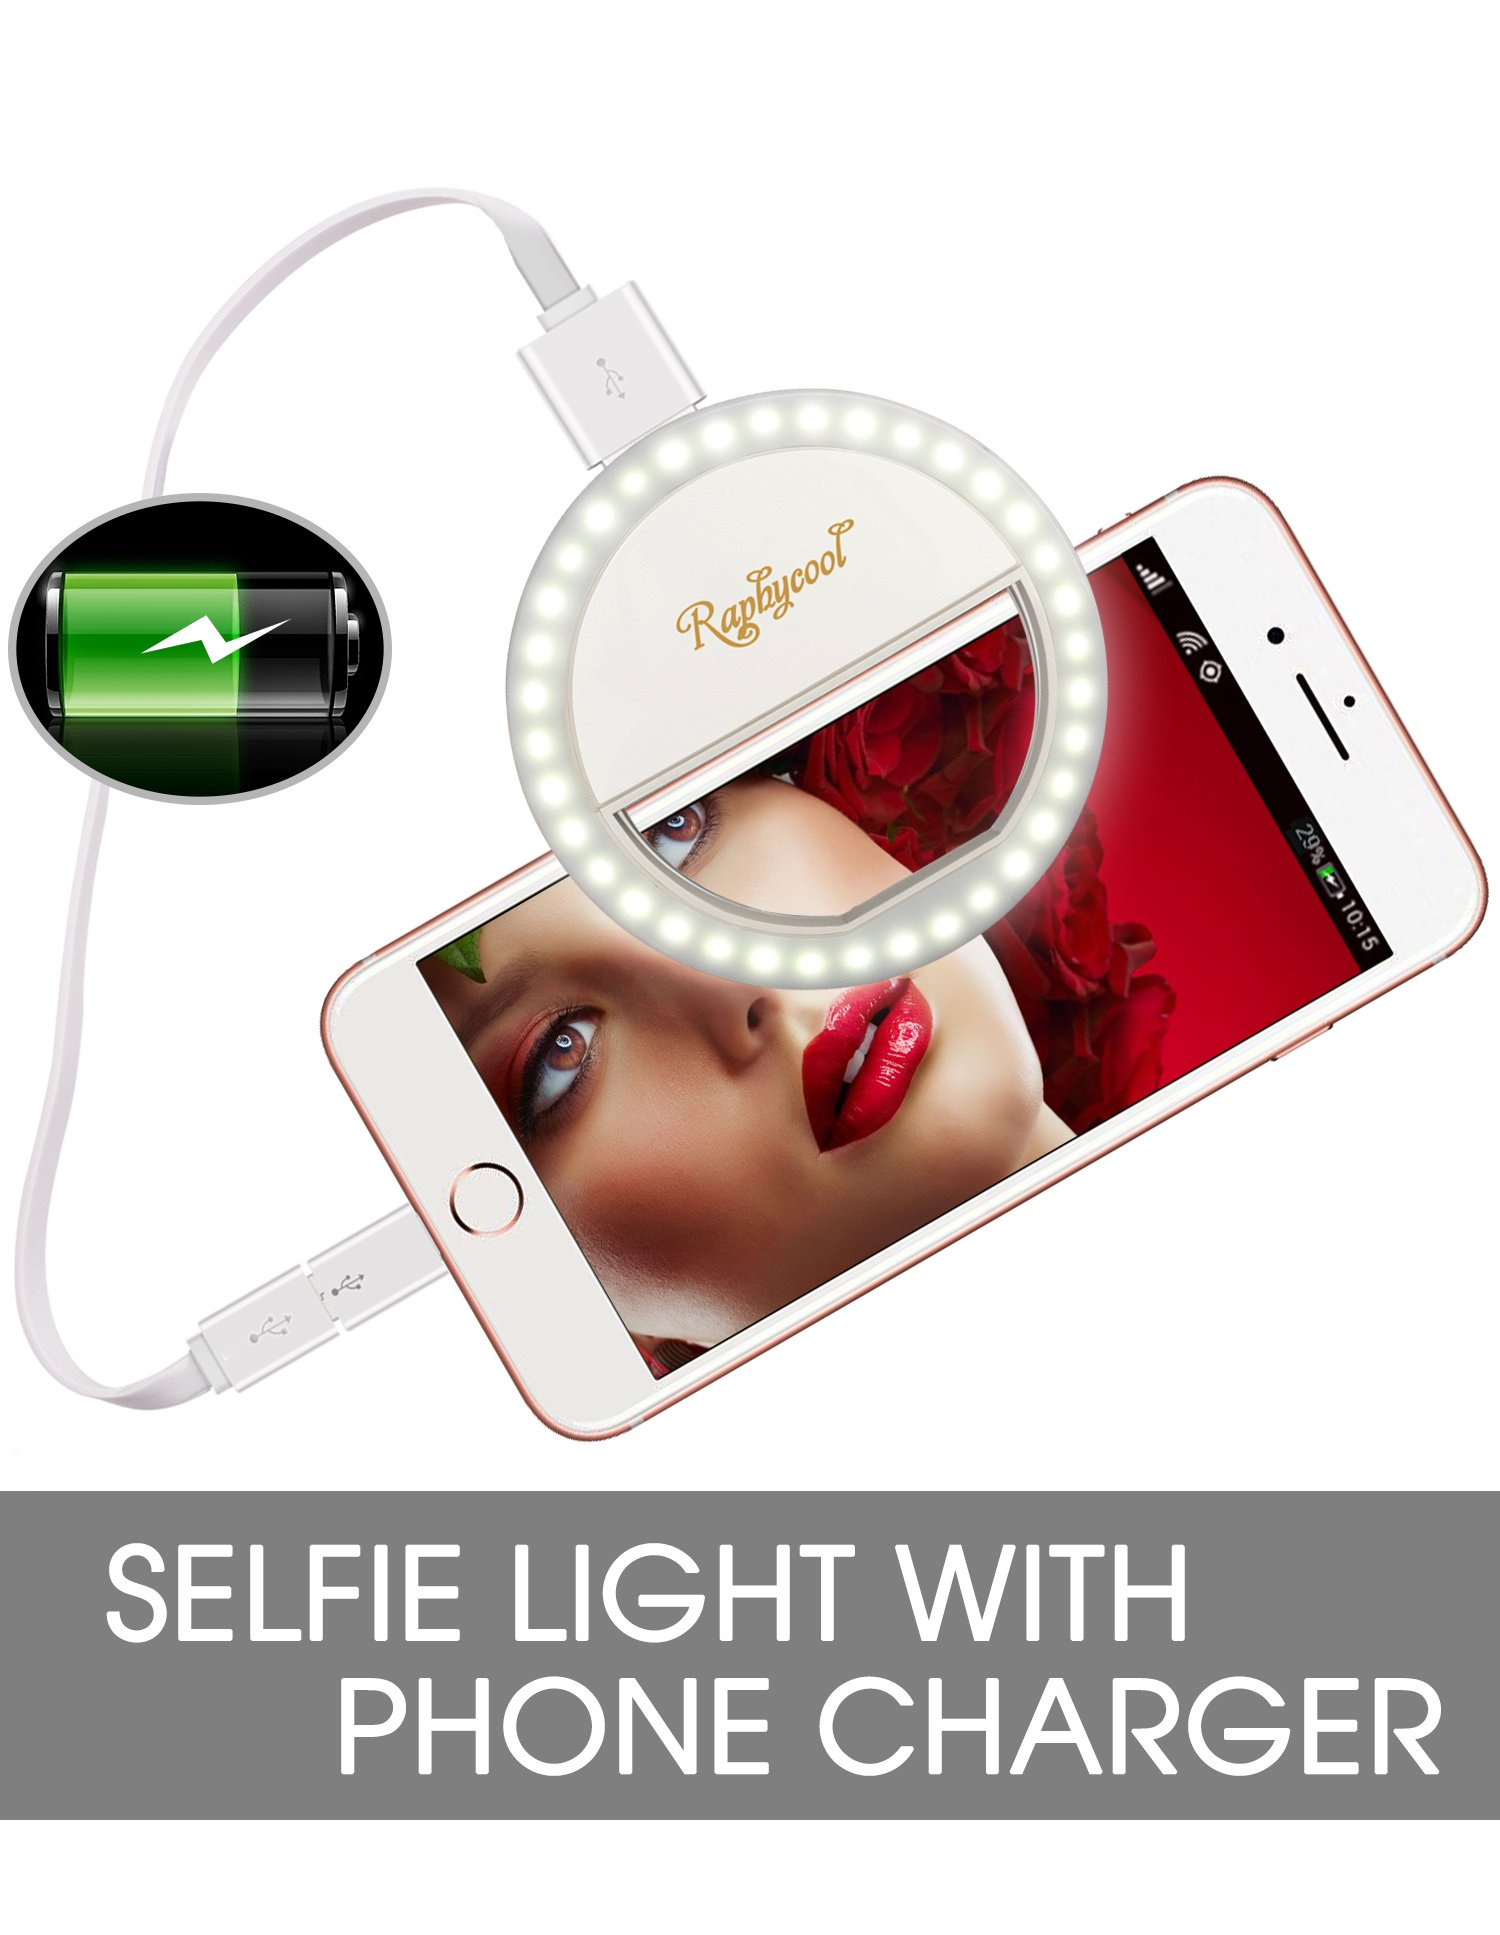 Raphycool Selfie Light Rechargeable, Selfie Ring Light for iPhone, Ring Light for Phone, 1500Mah Power Bank 36 Led Light Clip on iPhone Samsung Galaxy iPad Photography Camera,White